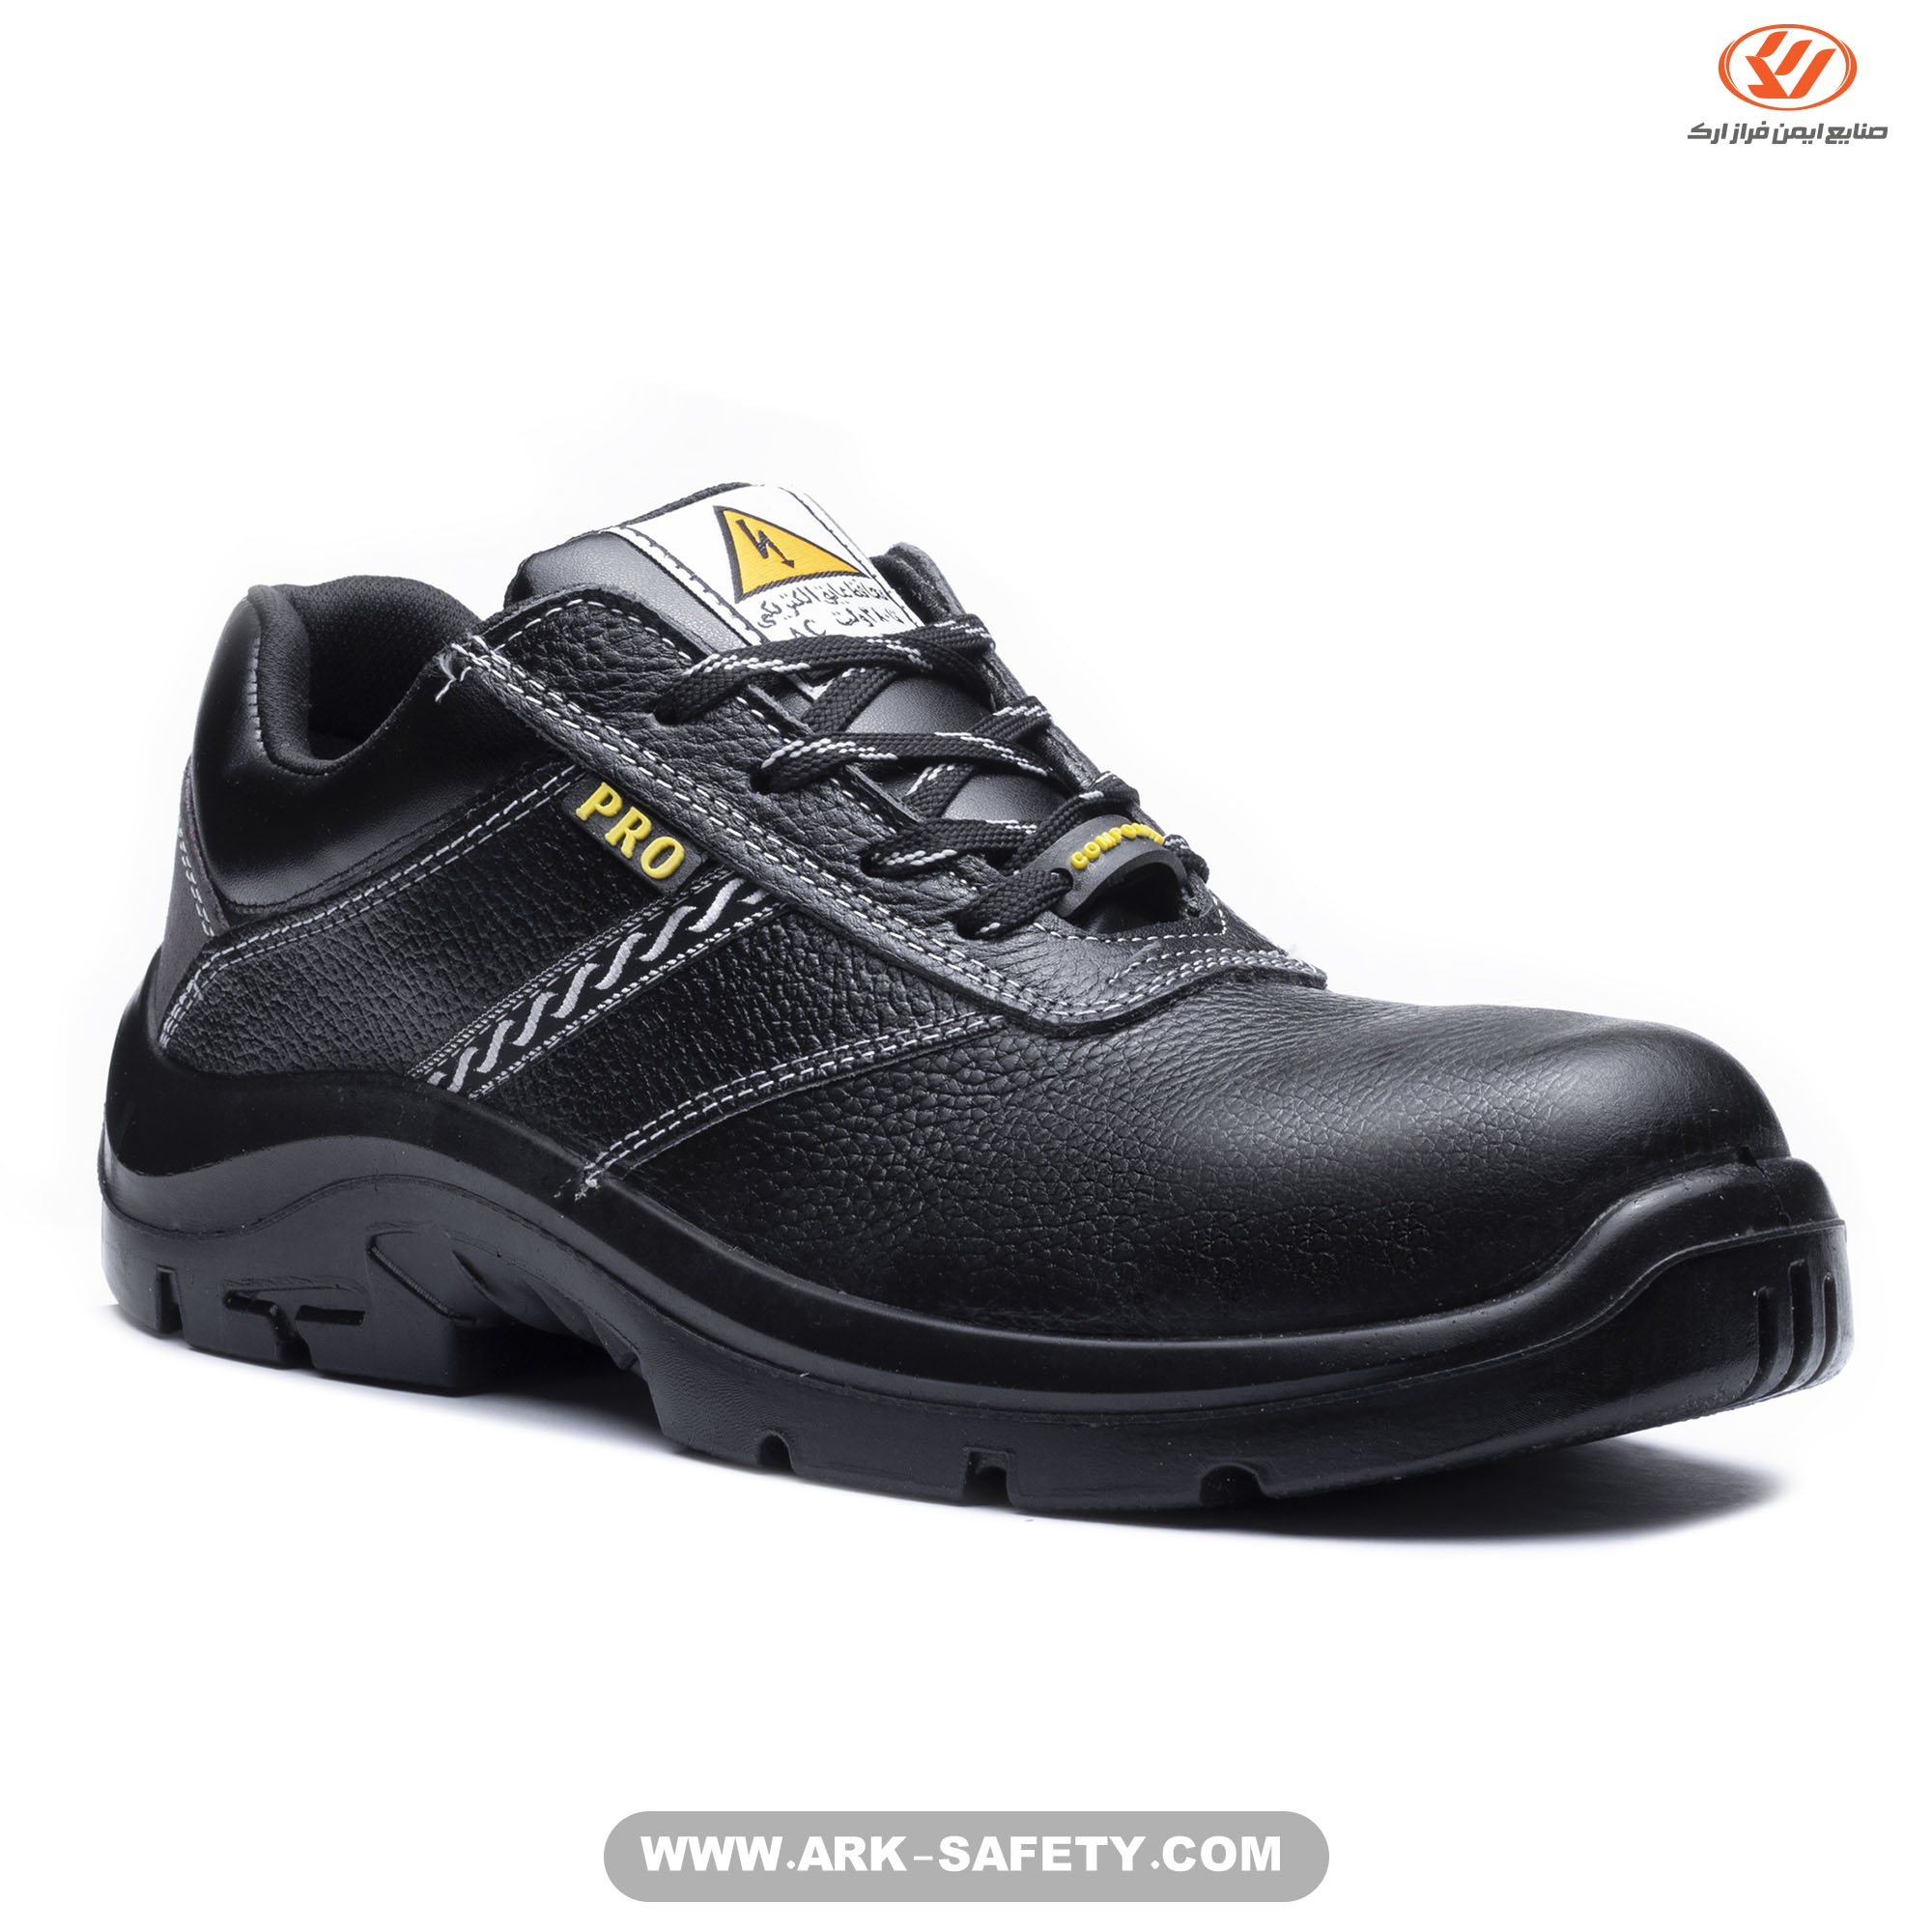 Pro composite safety shoes